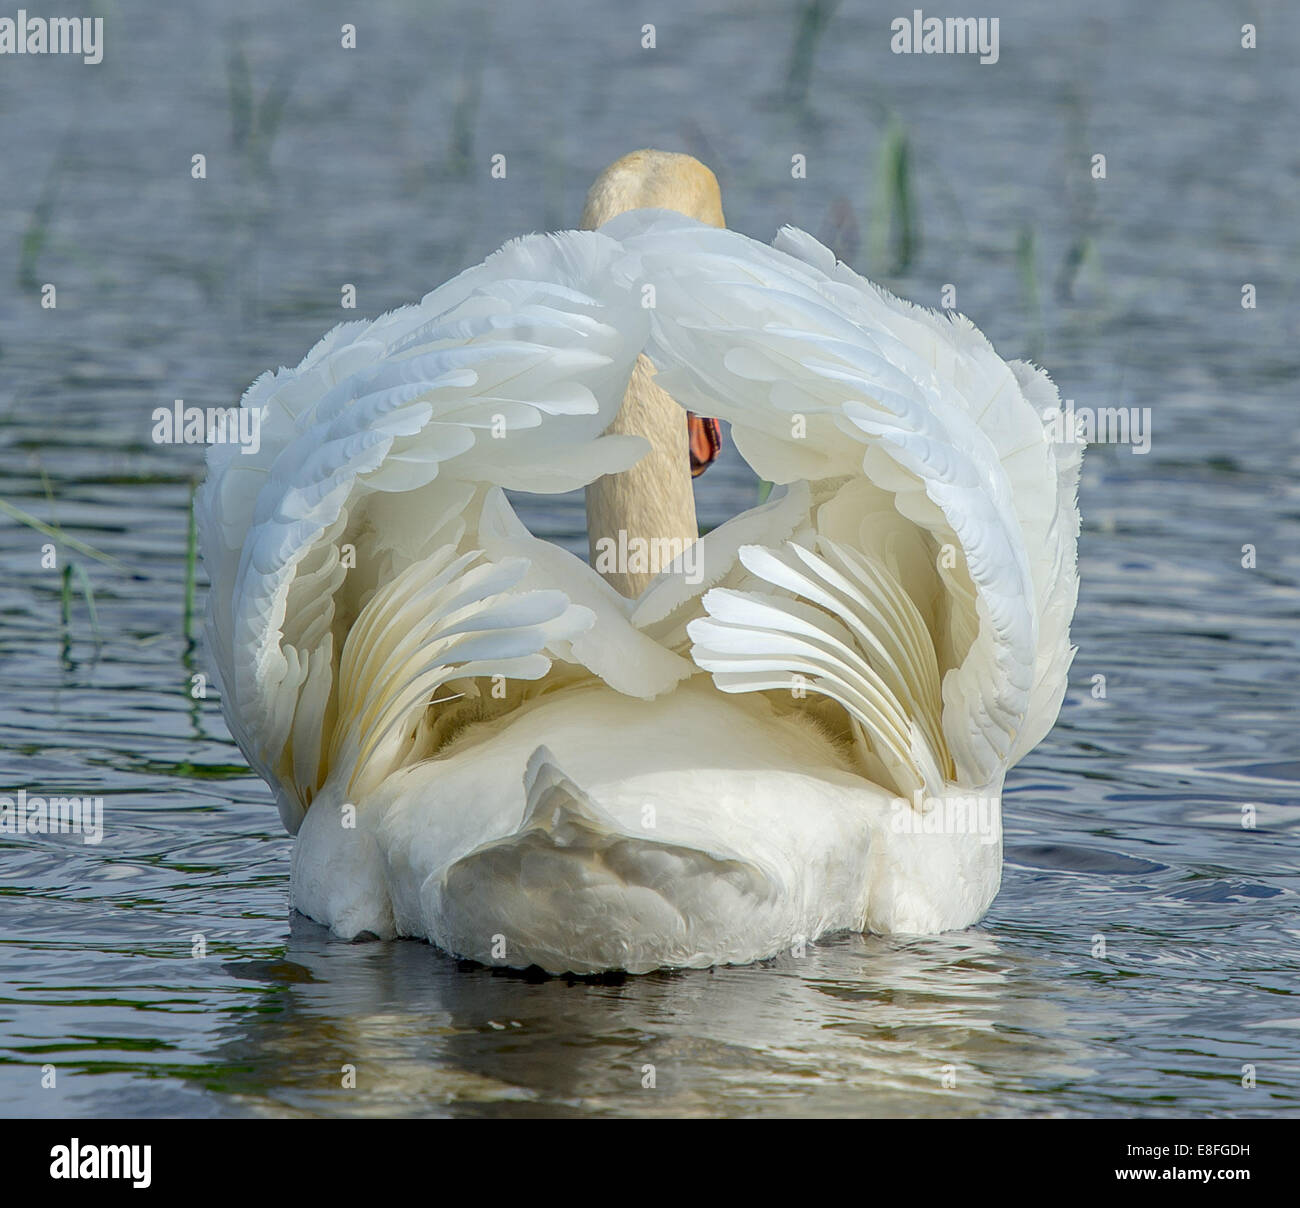 Rear view of swan - Stock Image